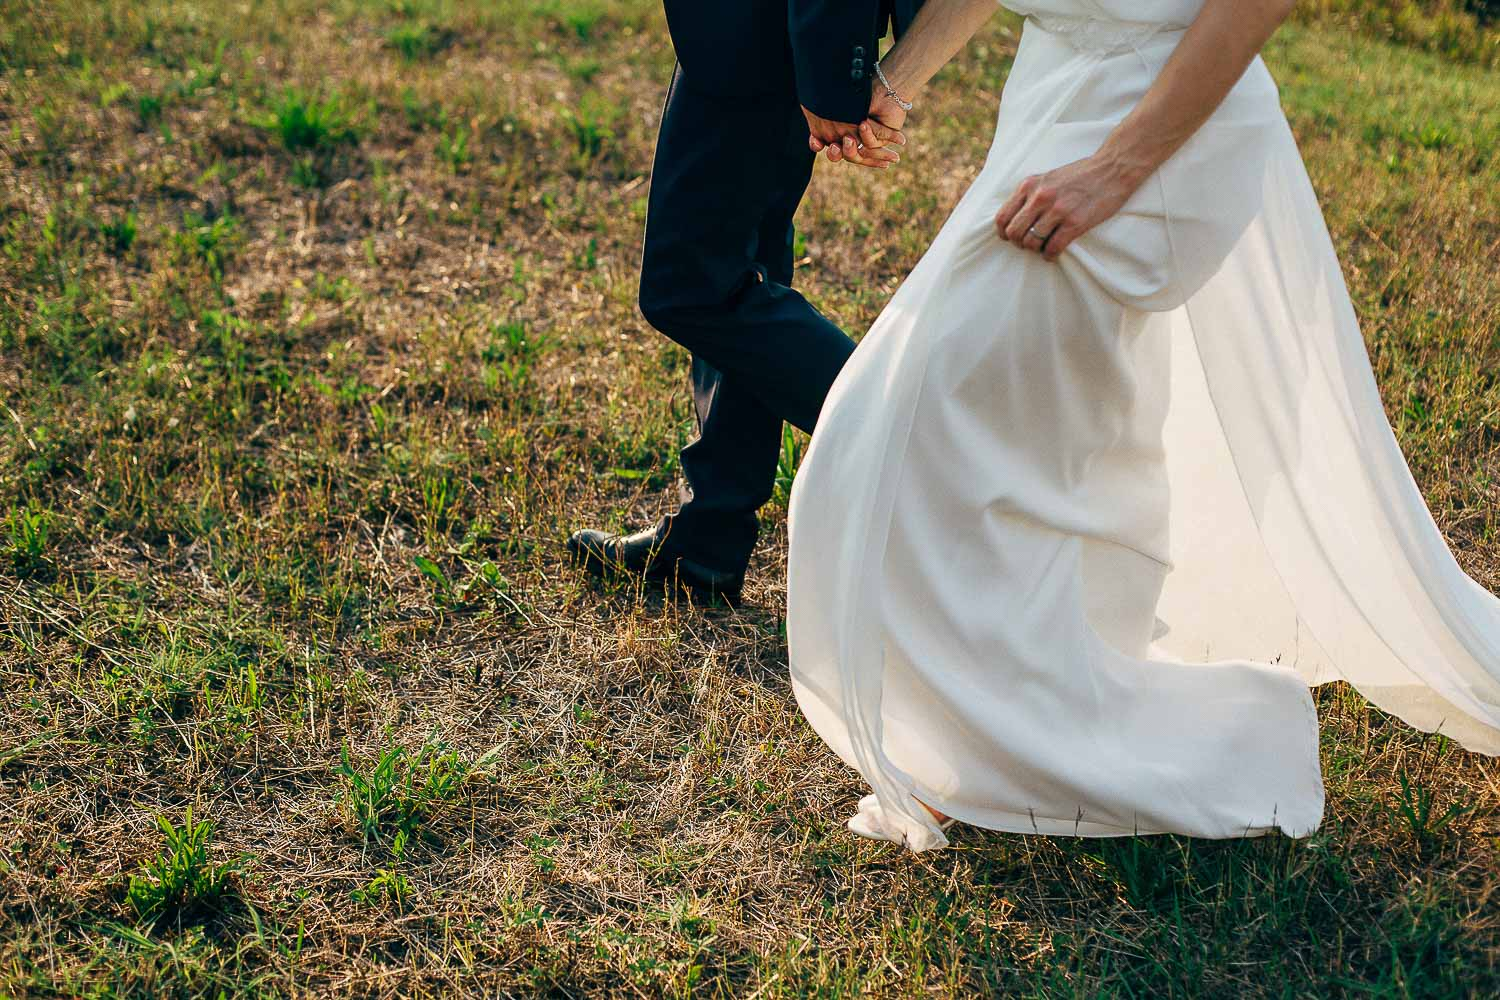 bride-dress-walking.jpg